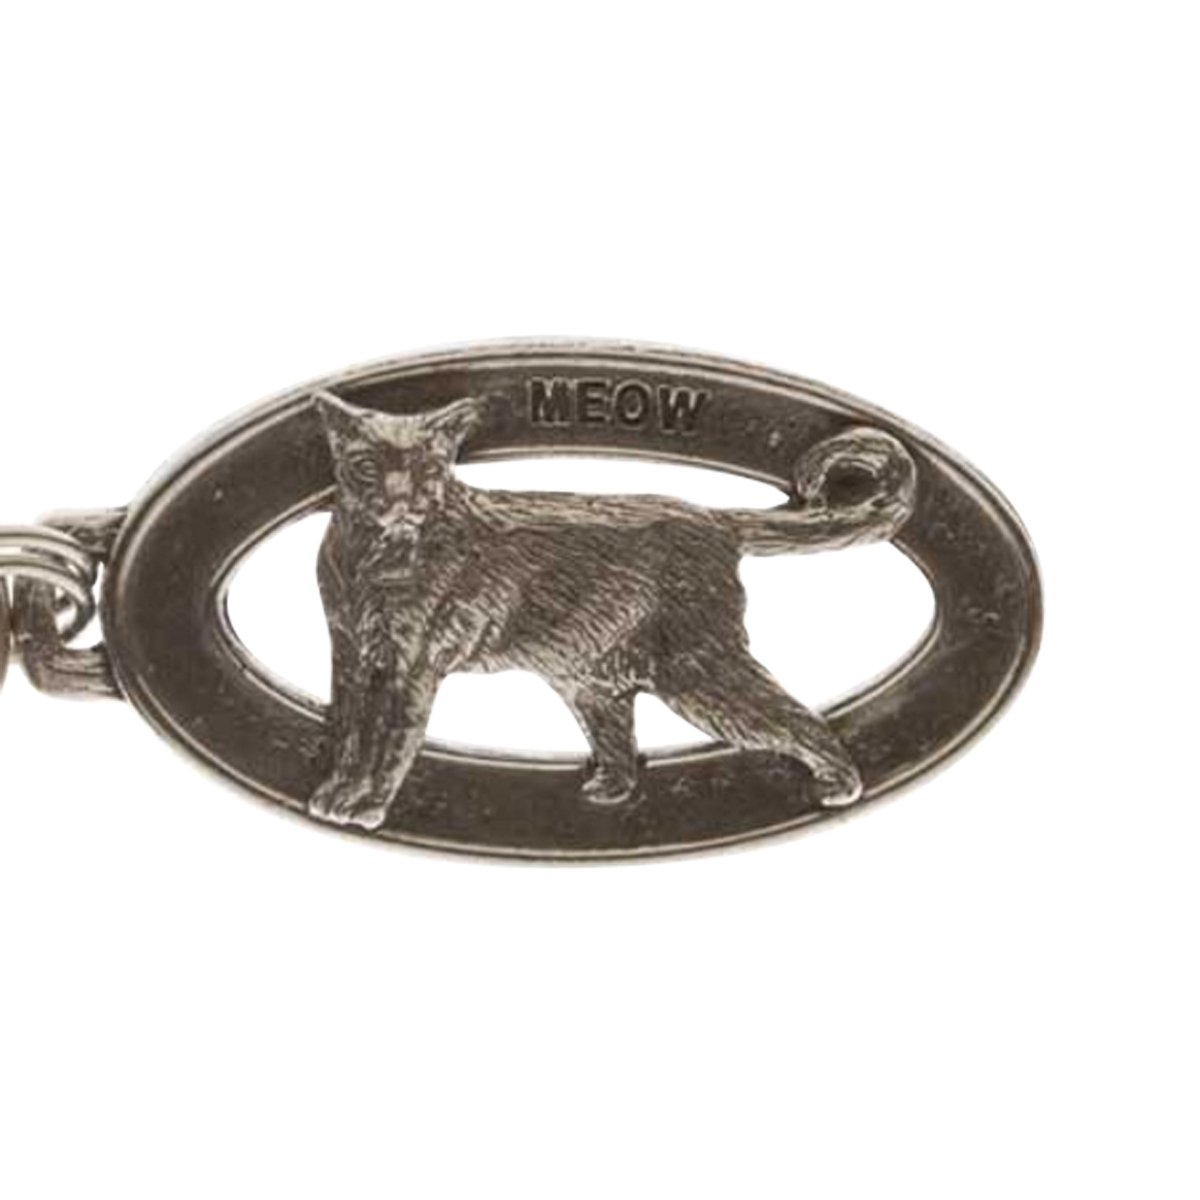 Creative Pewter Designs, Pewter Cat Standing Key Chain, Antiqued Finish, CK009